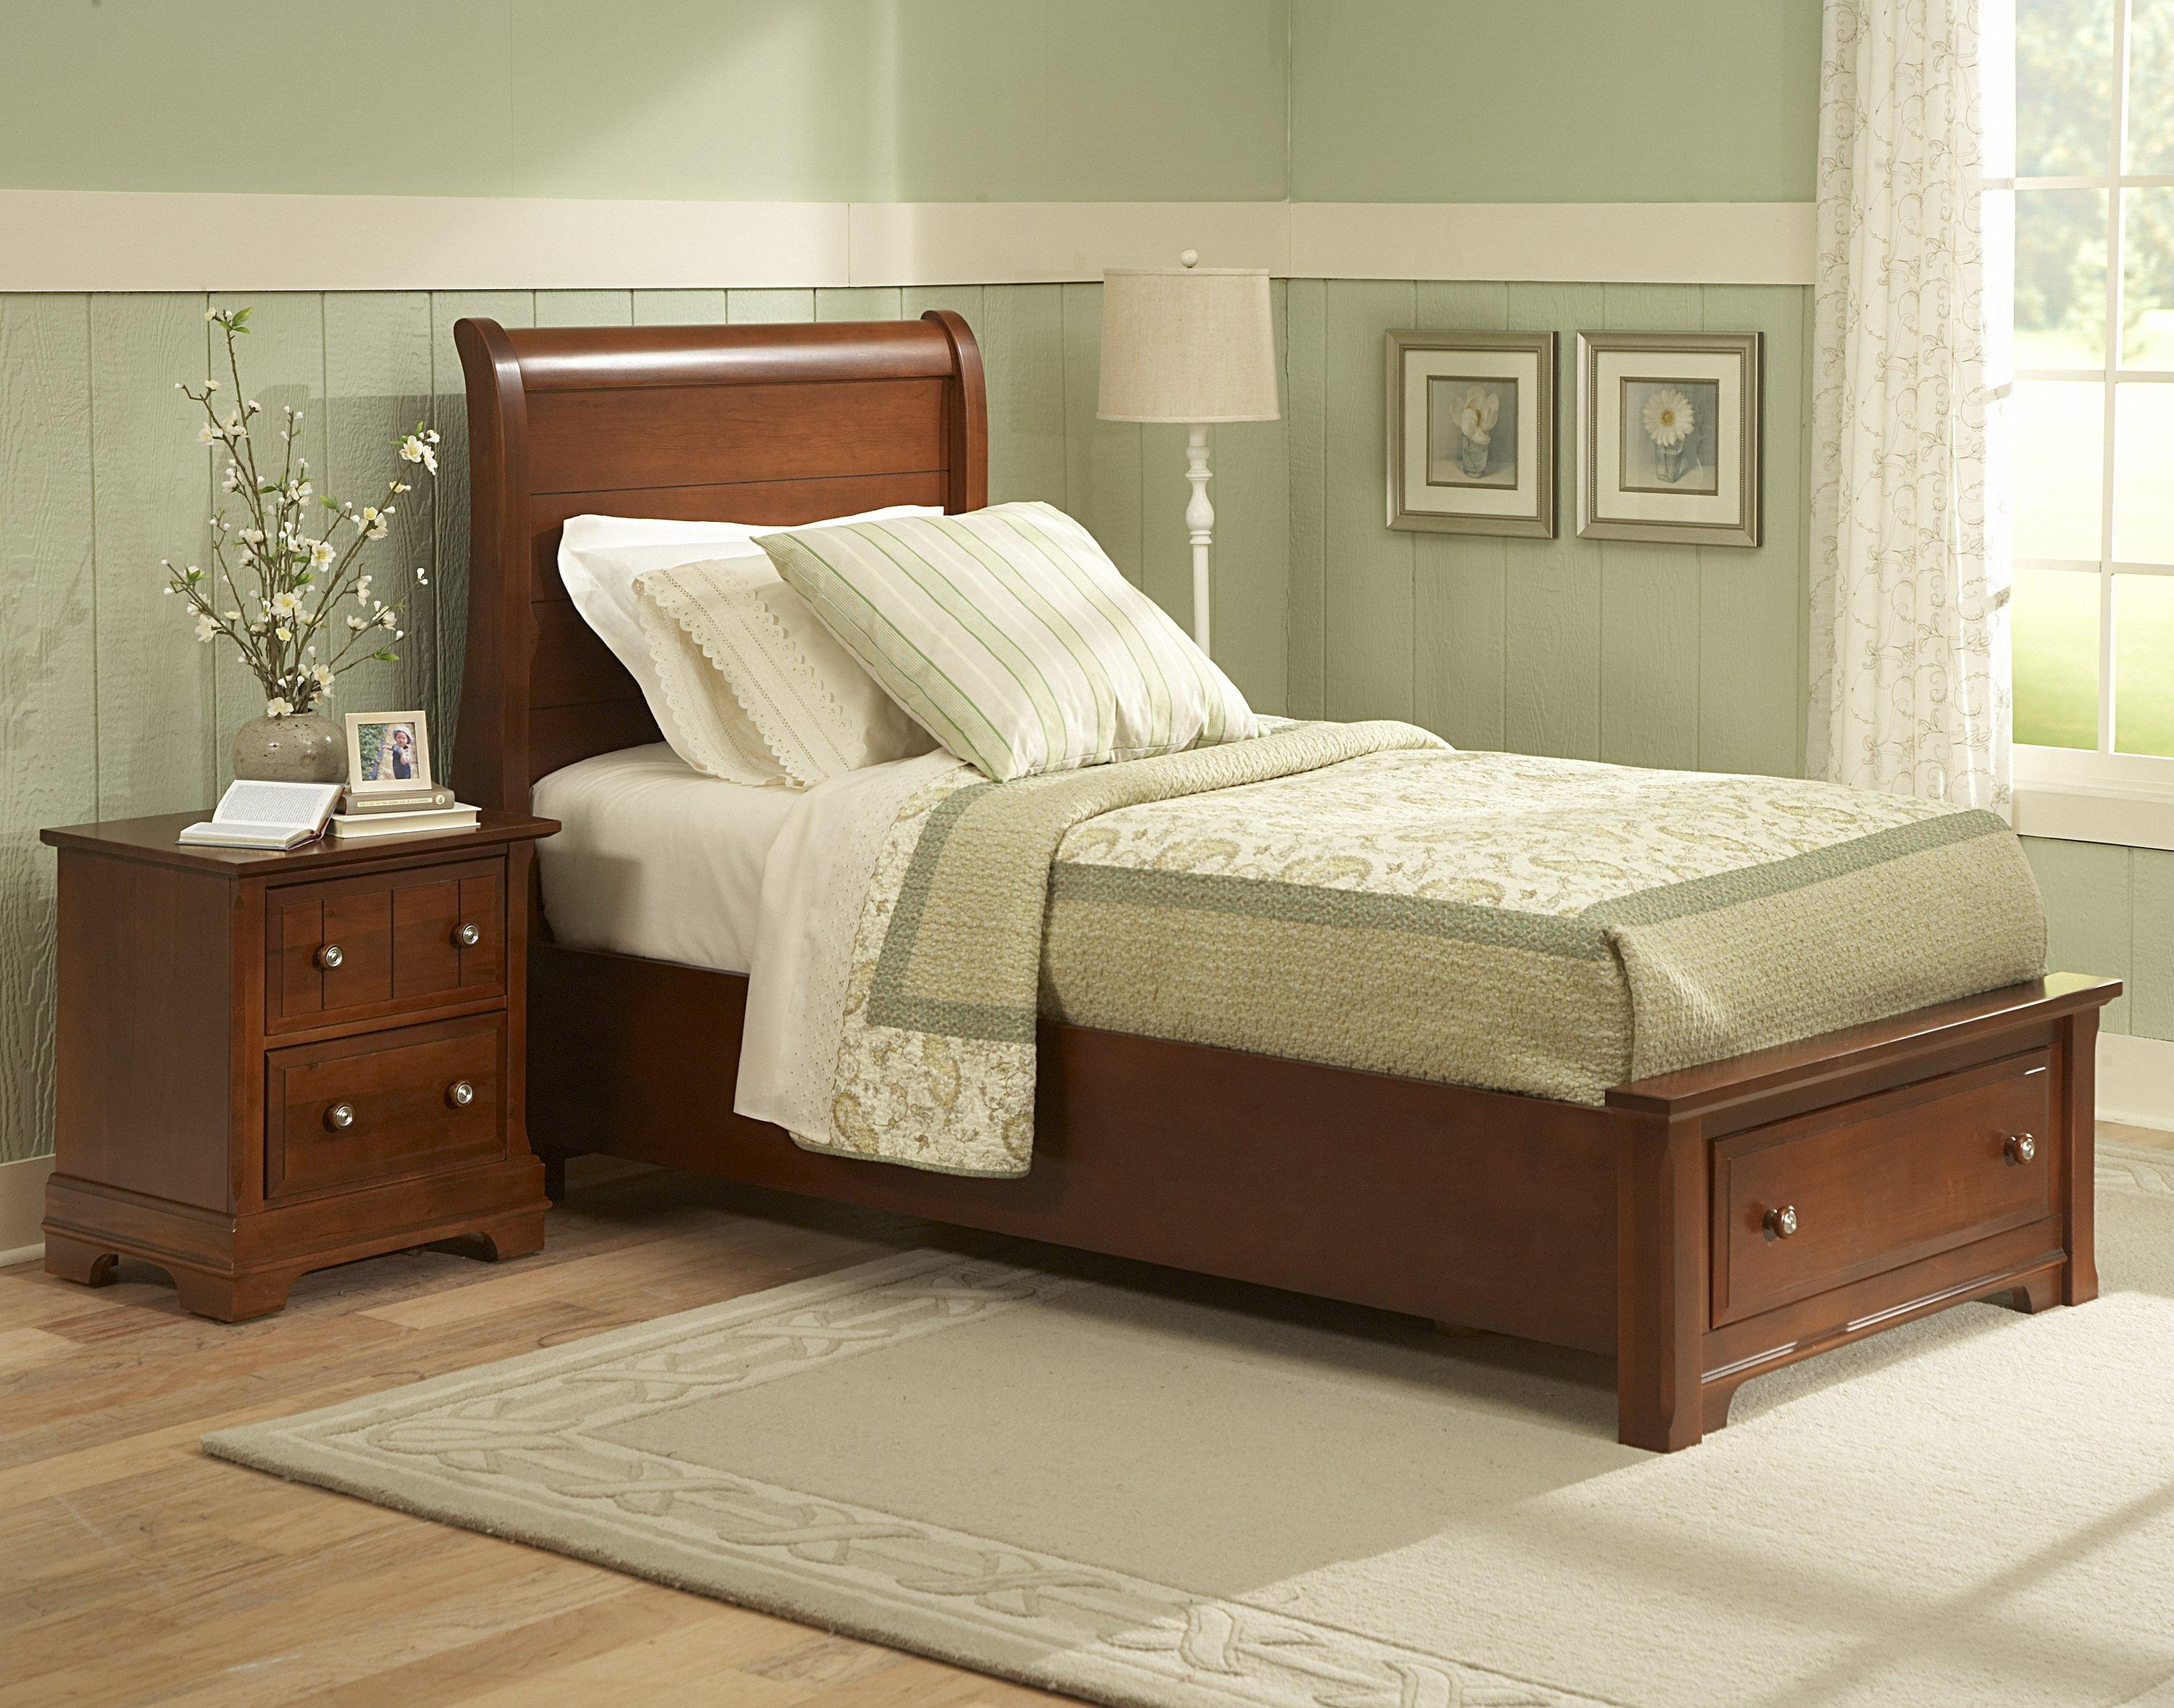 dresser collection bedroom furniture cottages bassett vaughan triple cottage snow white